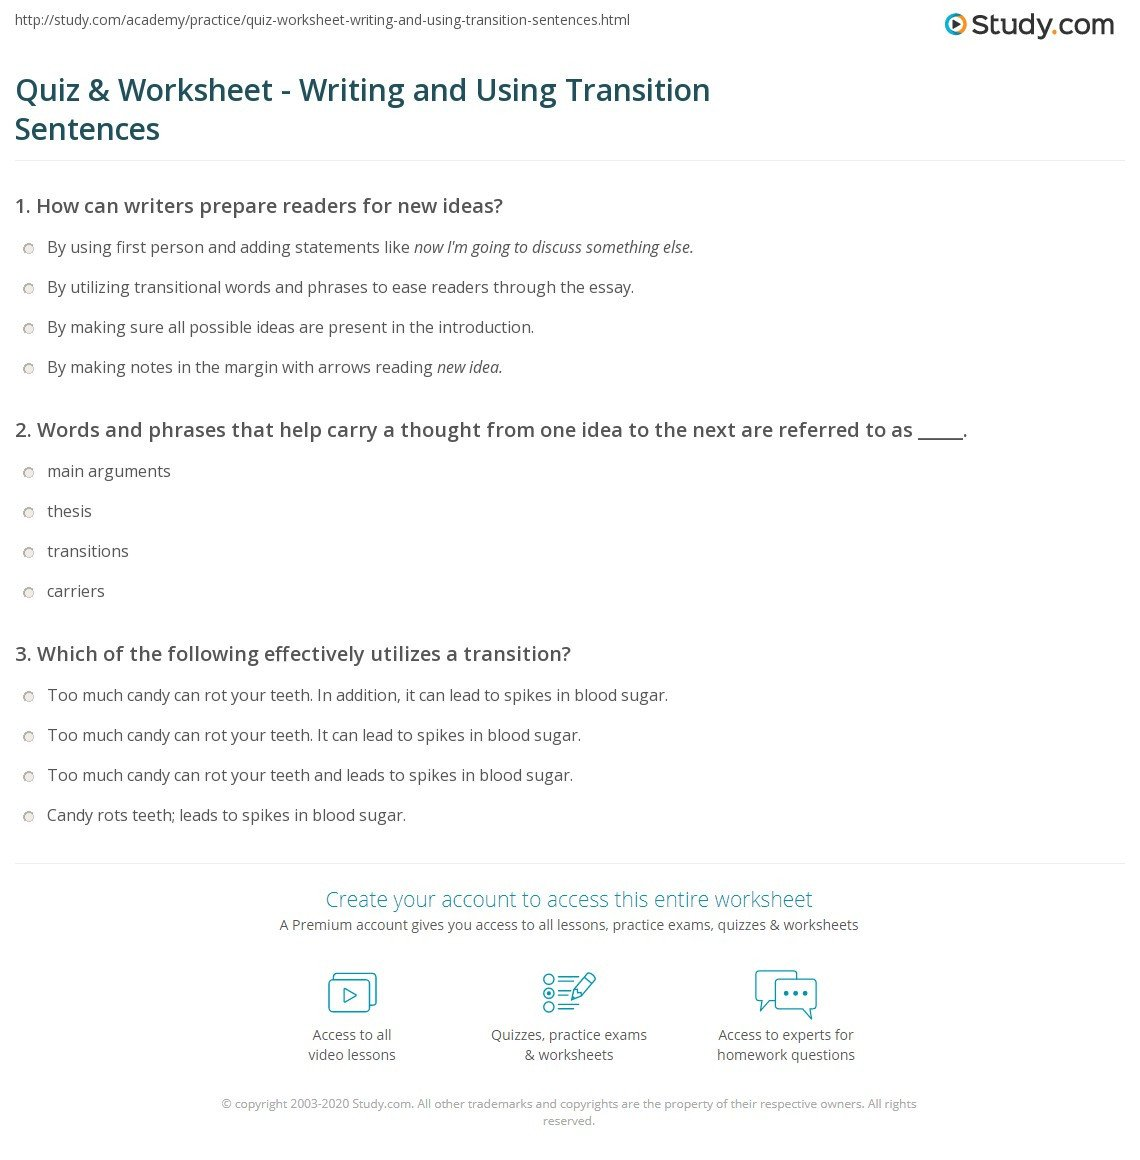 Transition Words Practice Worksheet Quiz & Worksheet Writing and Using Transition Sentences